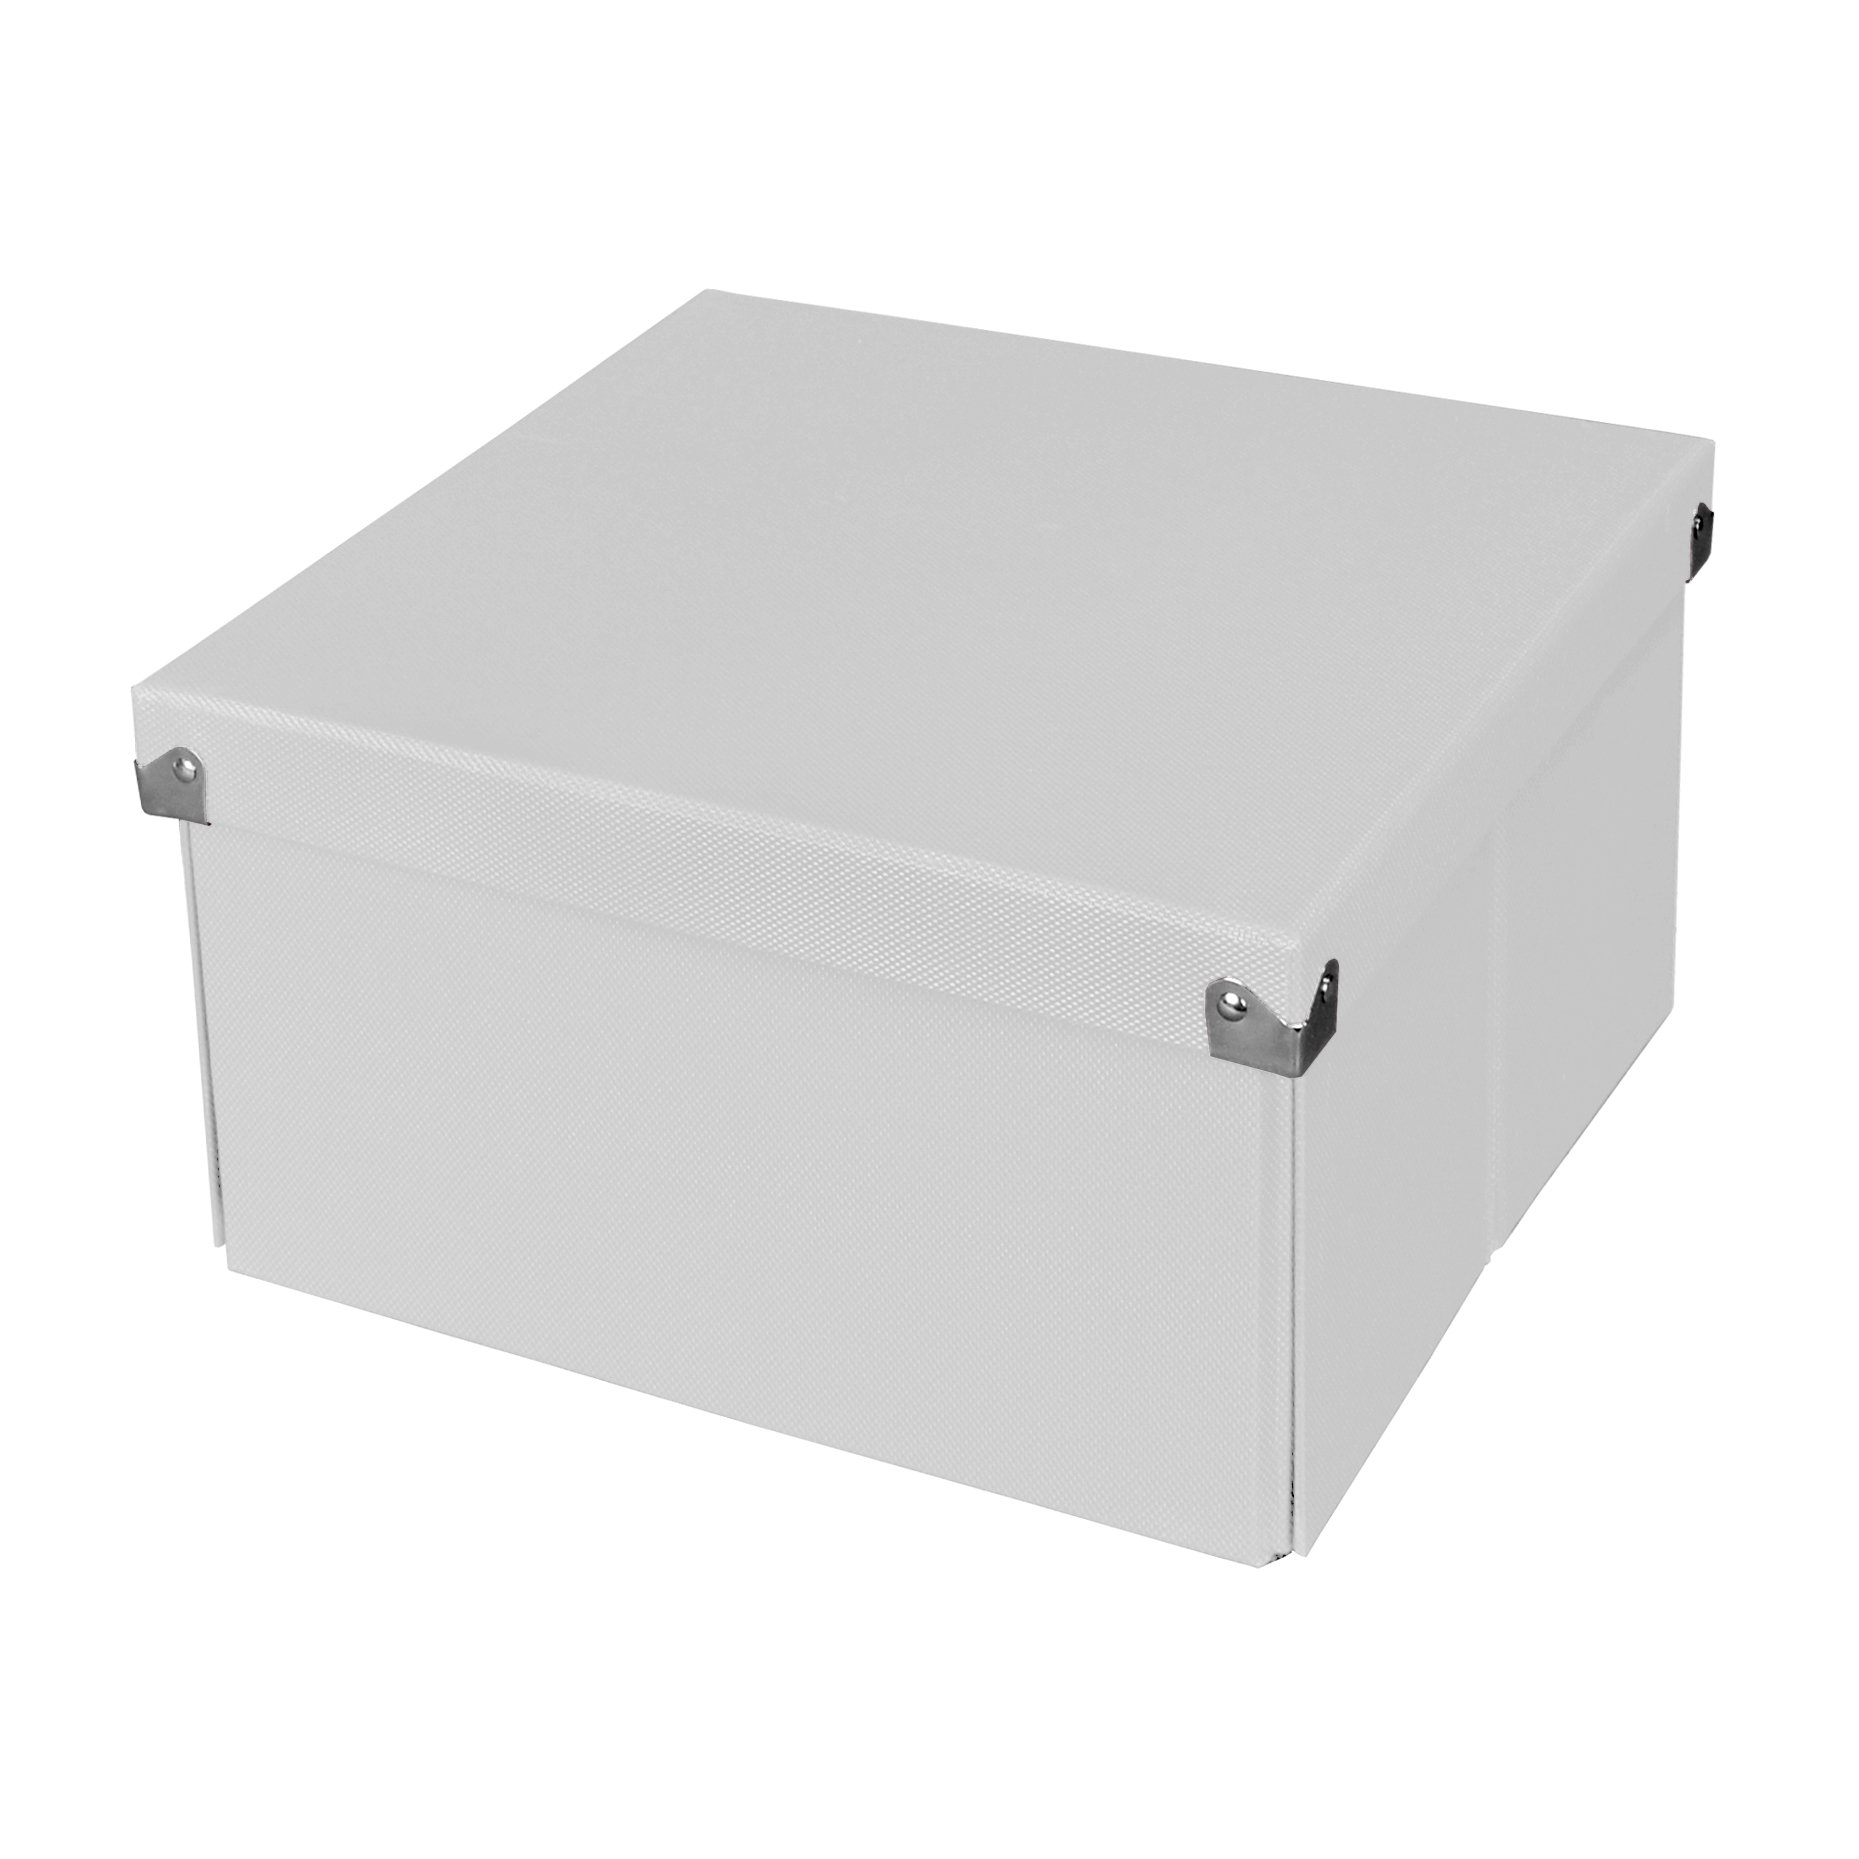 Pop n' Store Decorative Storage Box with Lid - Collapsible and Stackable- Medium Square Box - White - Interior Size (9.75''x9.75''x5.75'')